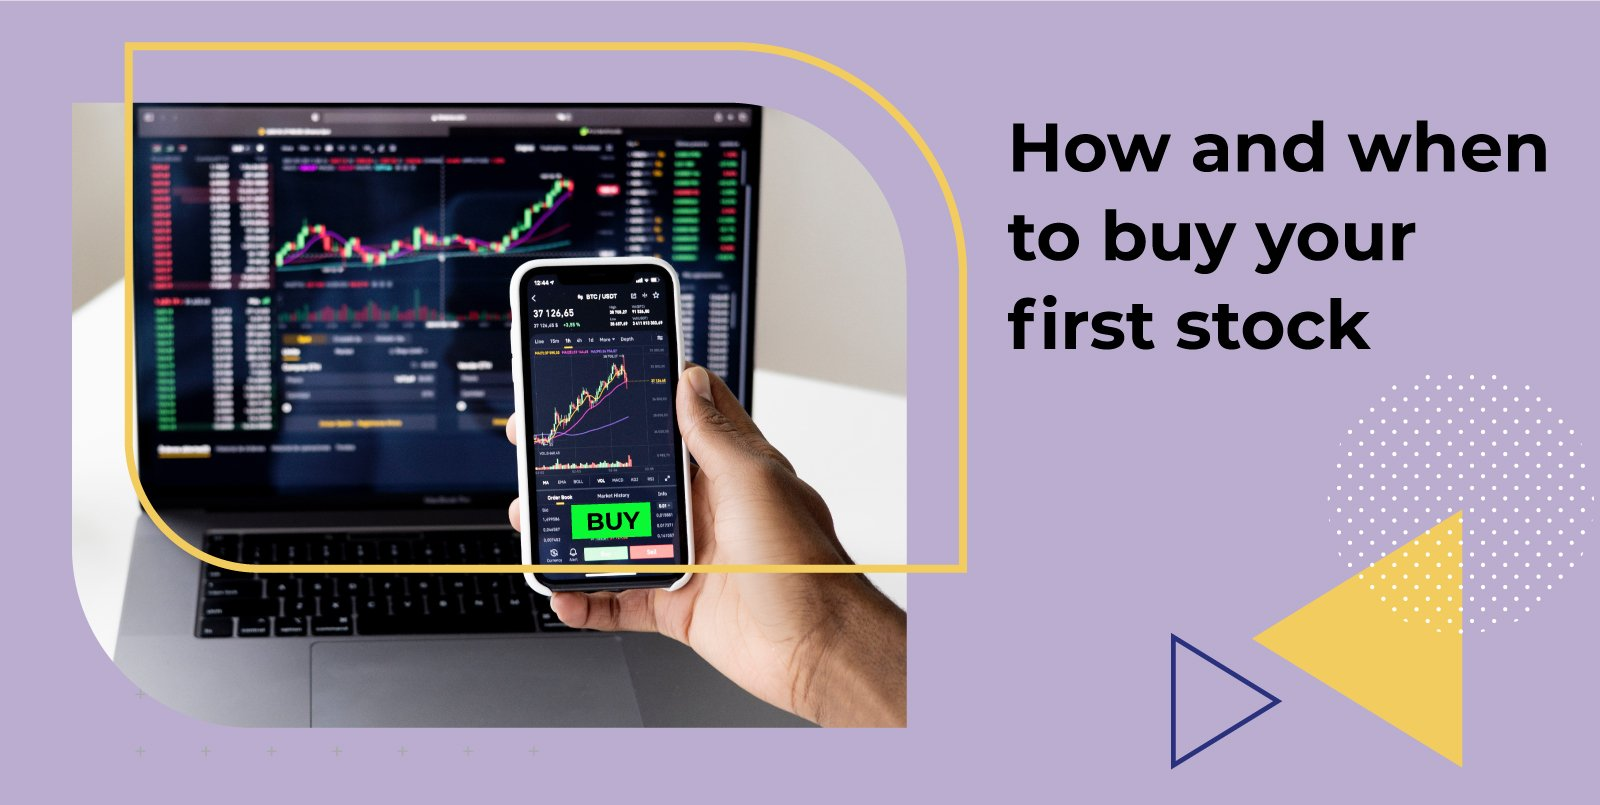 When to buy your first stock